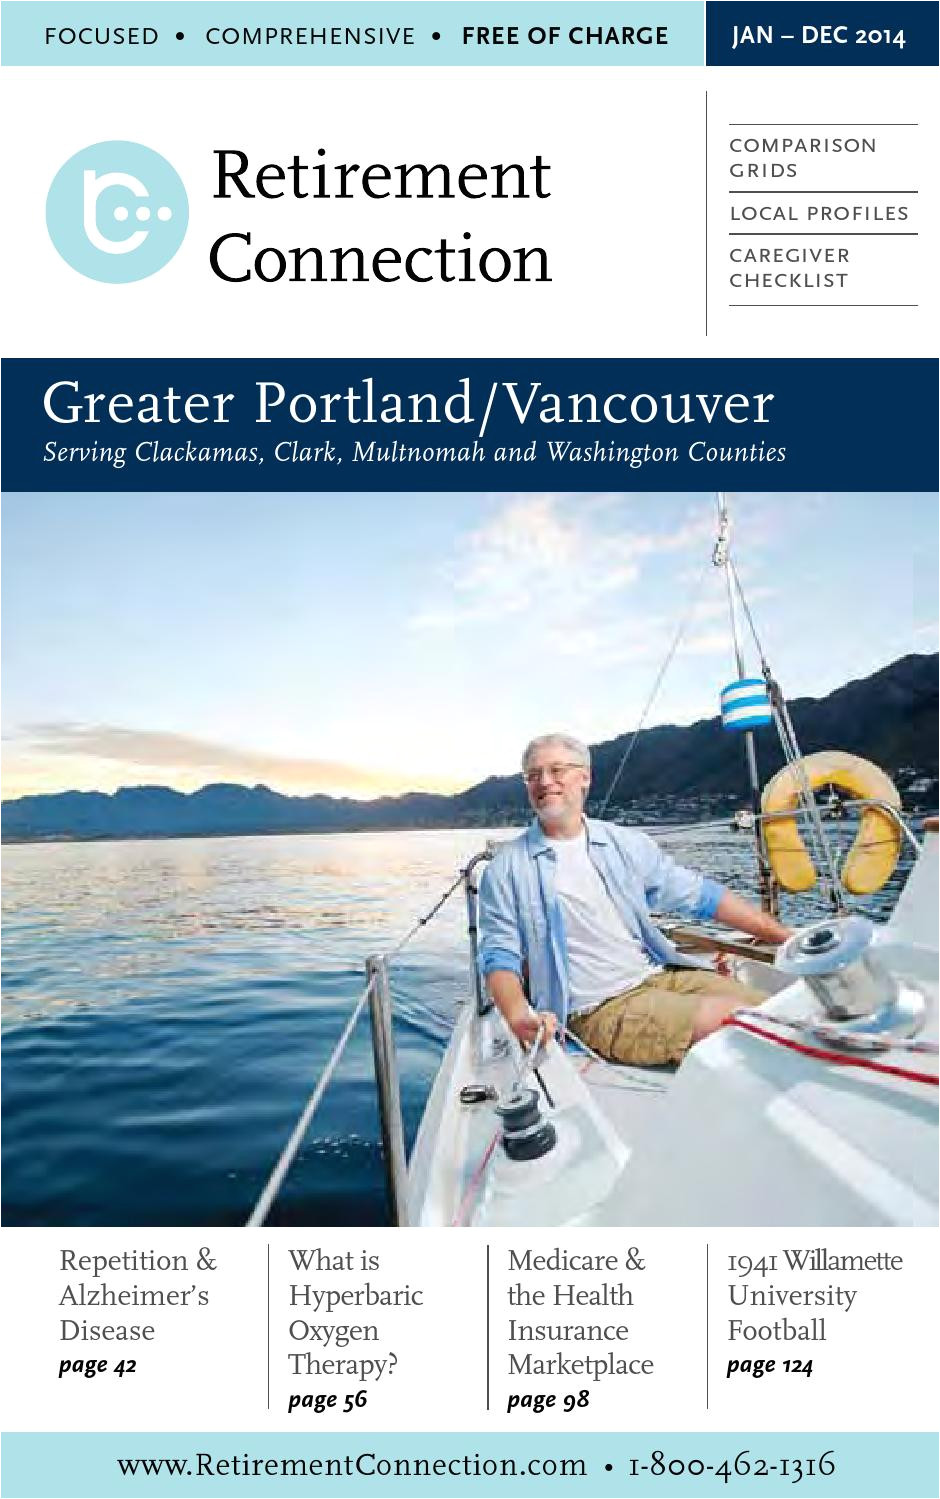 january 2014 retirement connection portland vancouver guide by retirement connection issuu